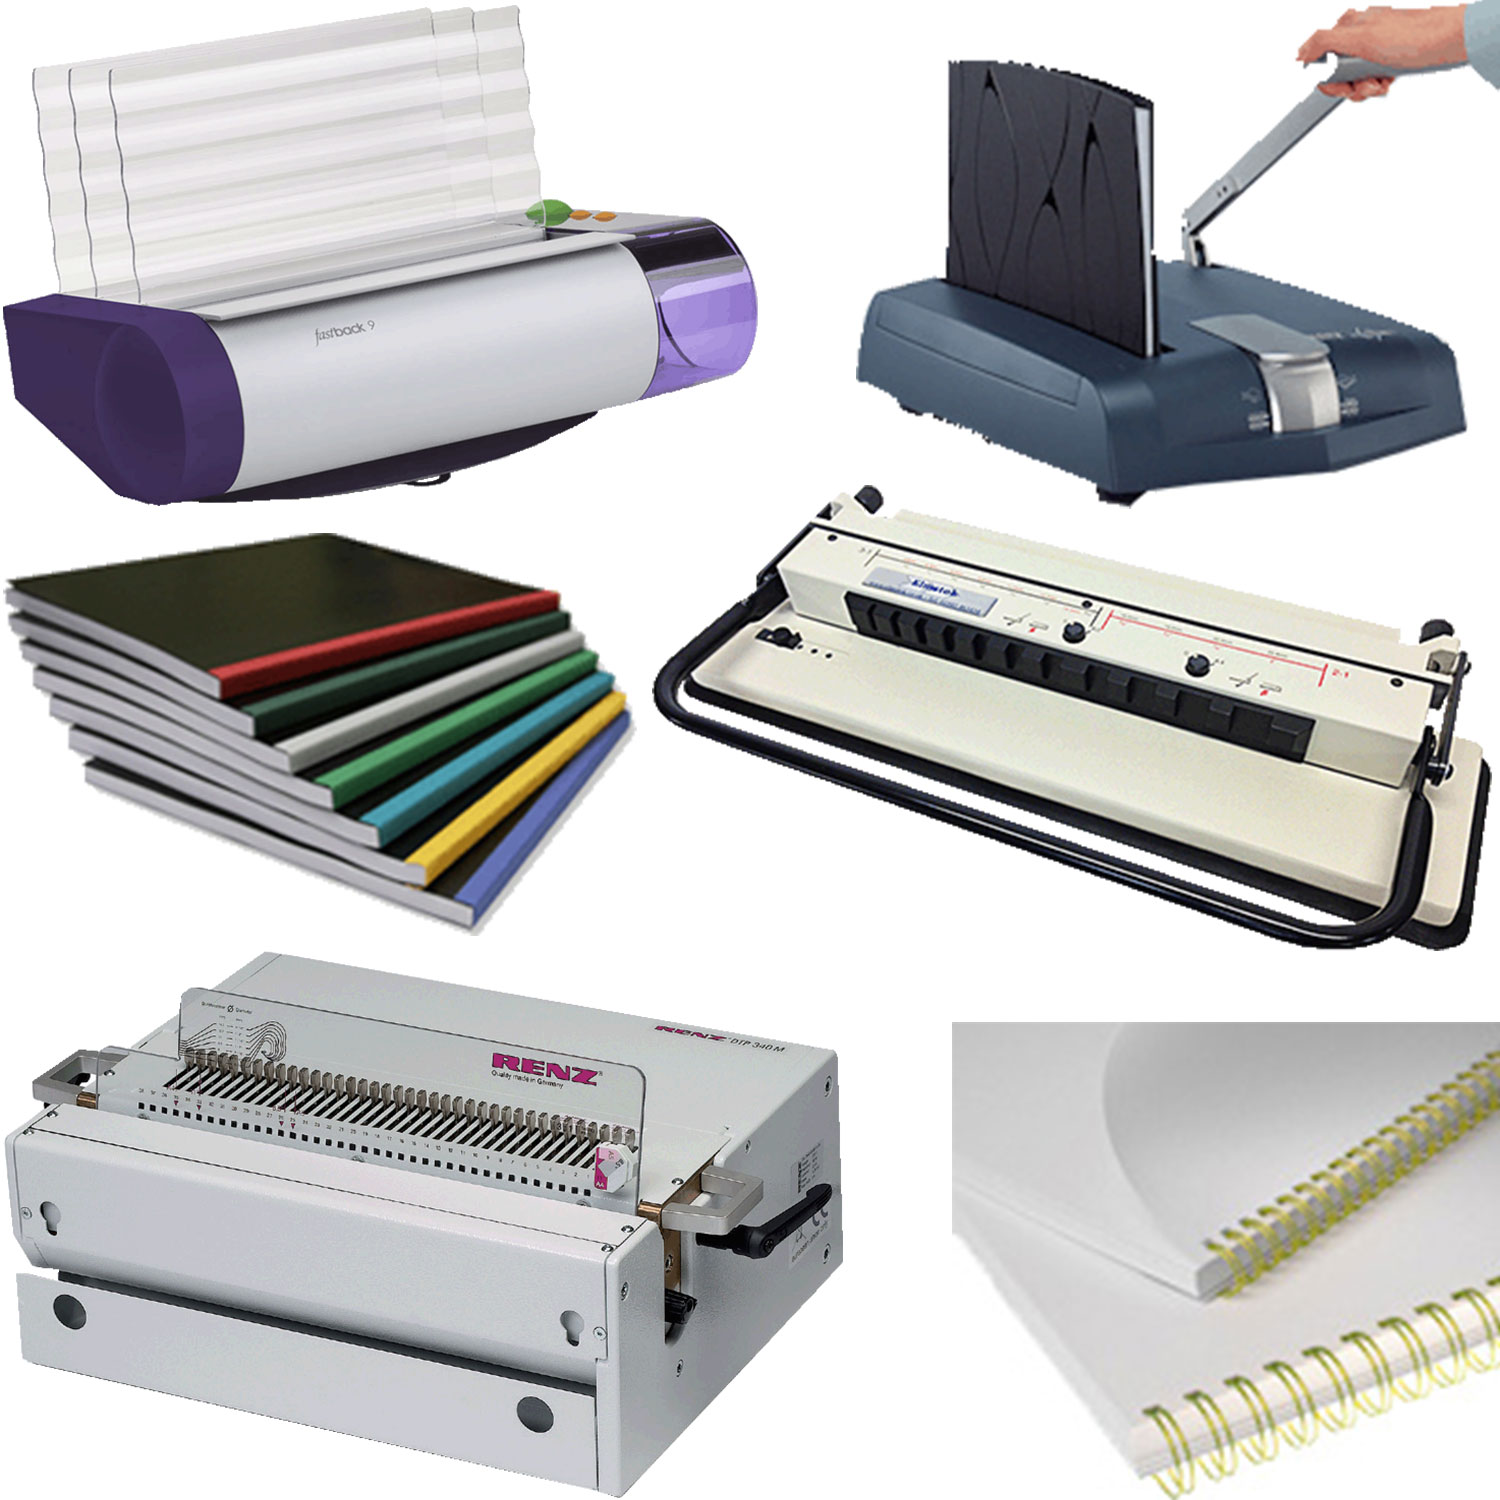 Binding Machines & Supplies